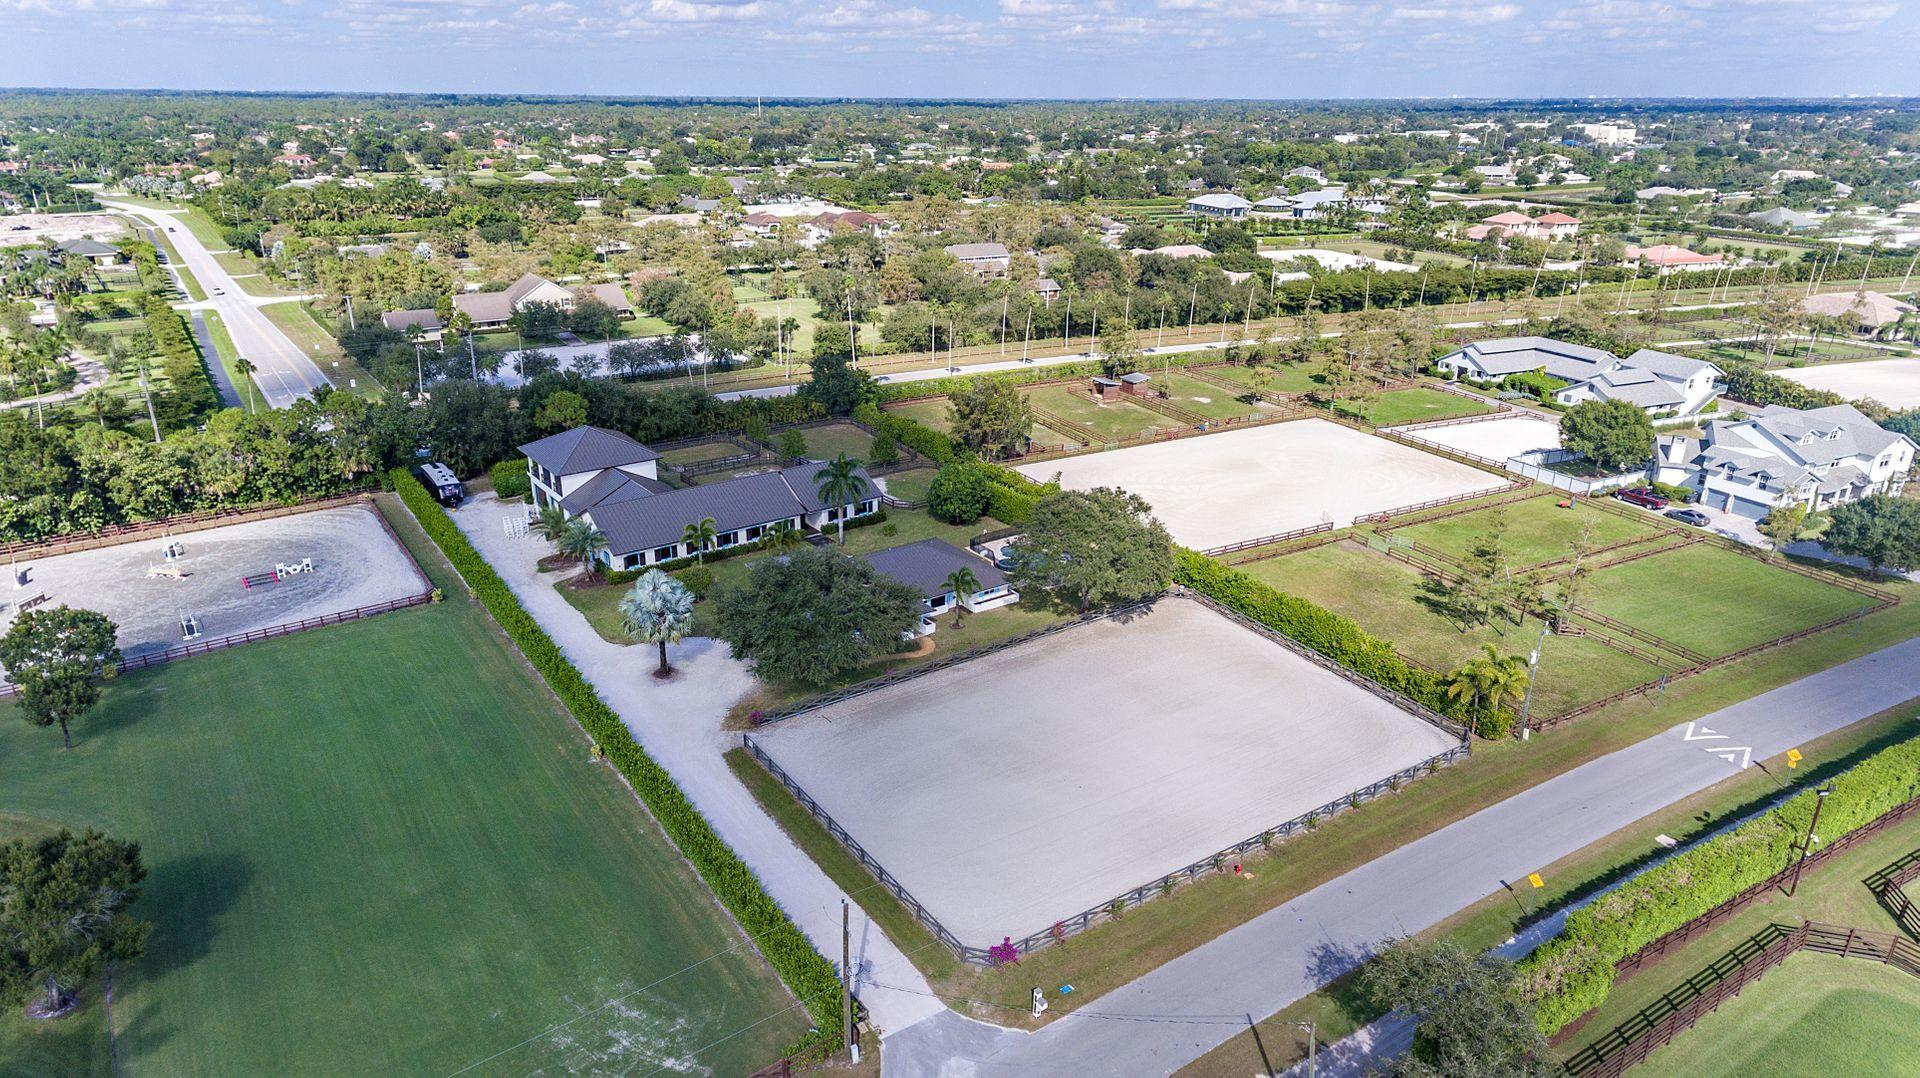 14343 Equestrian Way, Wellington, Florida 33414, 7 Bedrooms Bedrooms, ,5.1 BathroomsBathrooms,Single Family,For Rent,Equestrian,RX-10478697